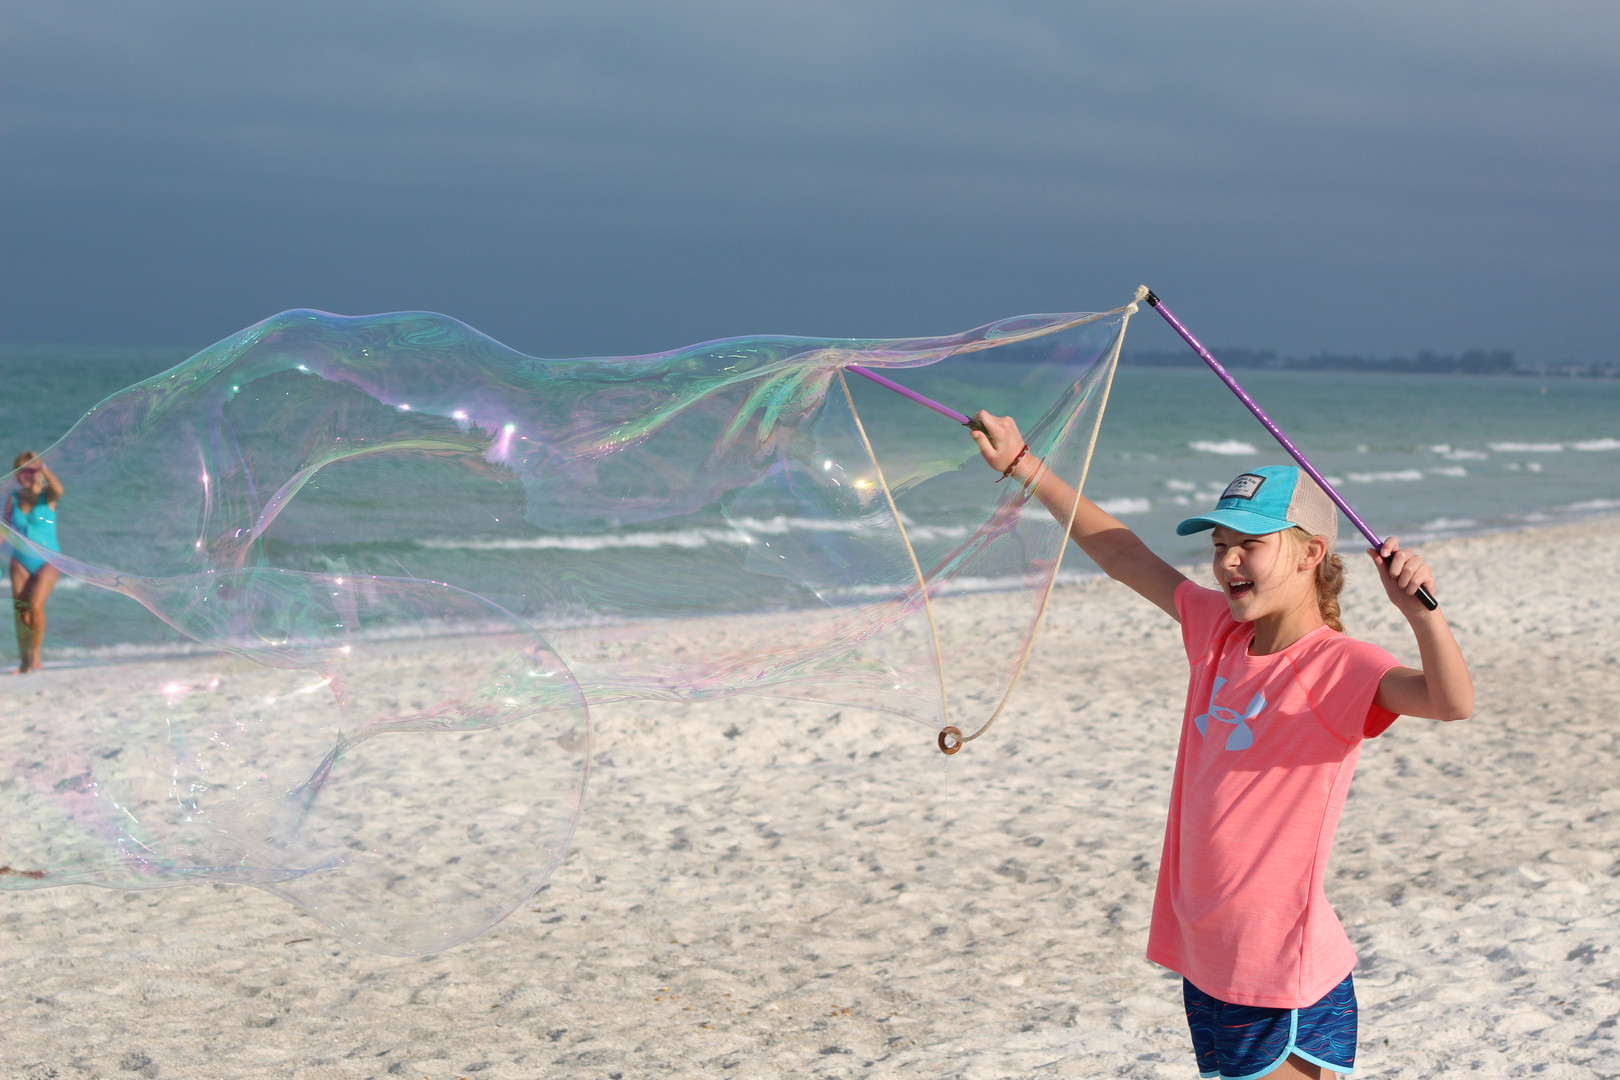 Giant Bubbles on the Beach